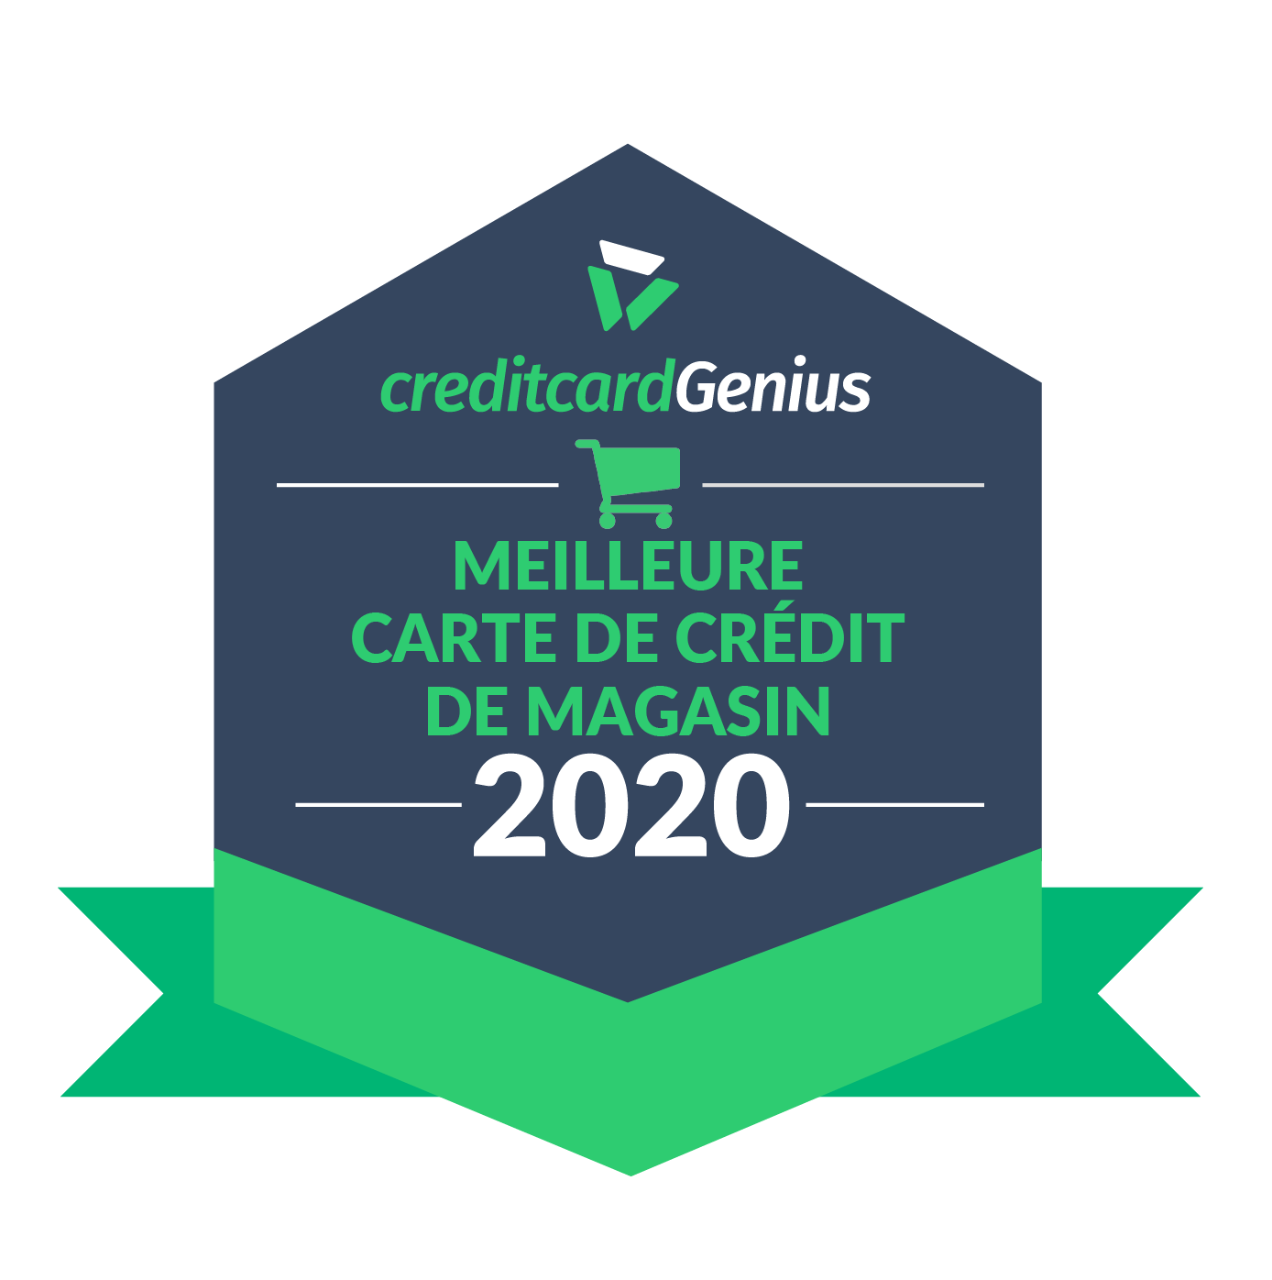 People's Choice Credit Card 2020 Award by CreditCardGenius